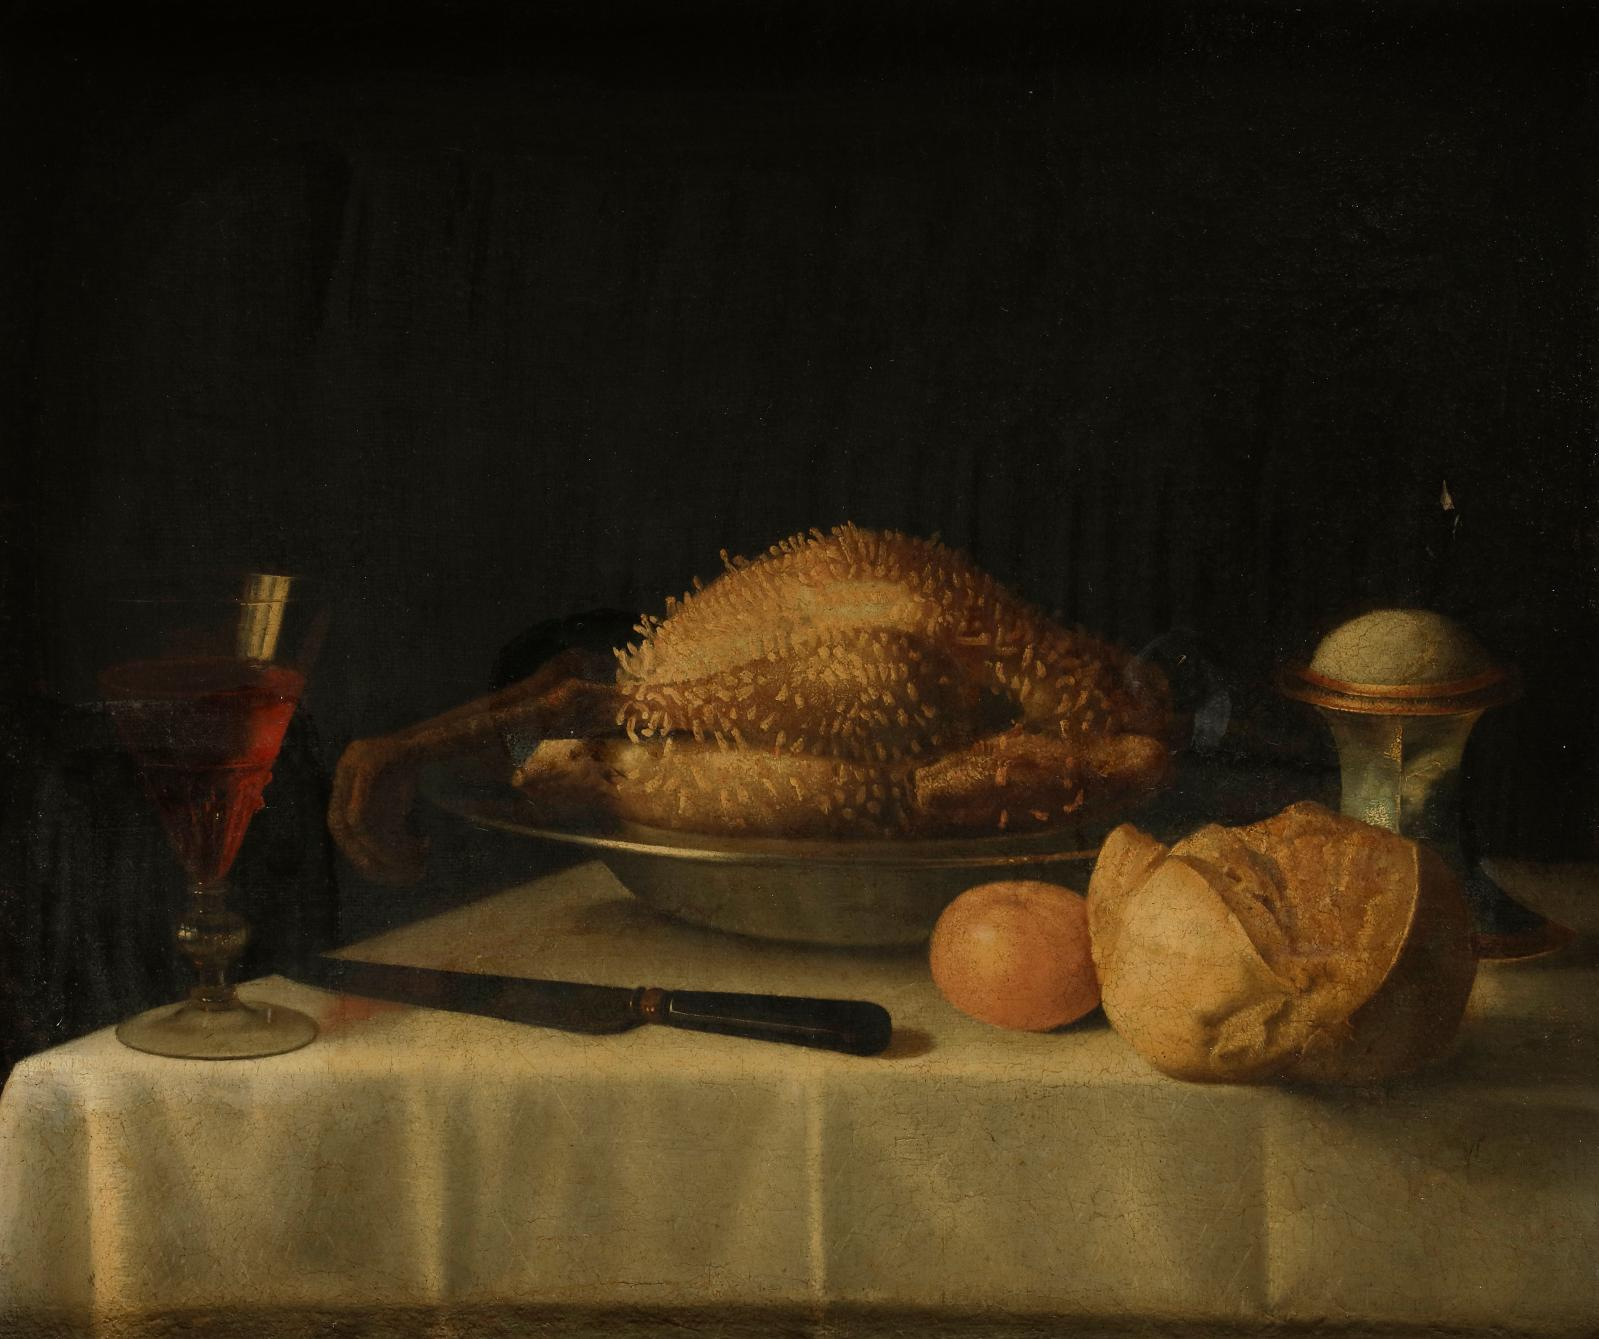 Sébastien Stoskopff (1597-1657), Nature morte à la volaille lardée, salière, miche de pain et verre de vin, oil on canvas, 52.5 x 63 cm.Estimate: €40,